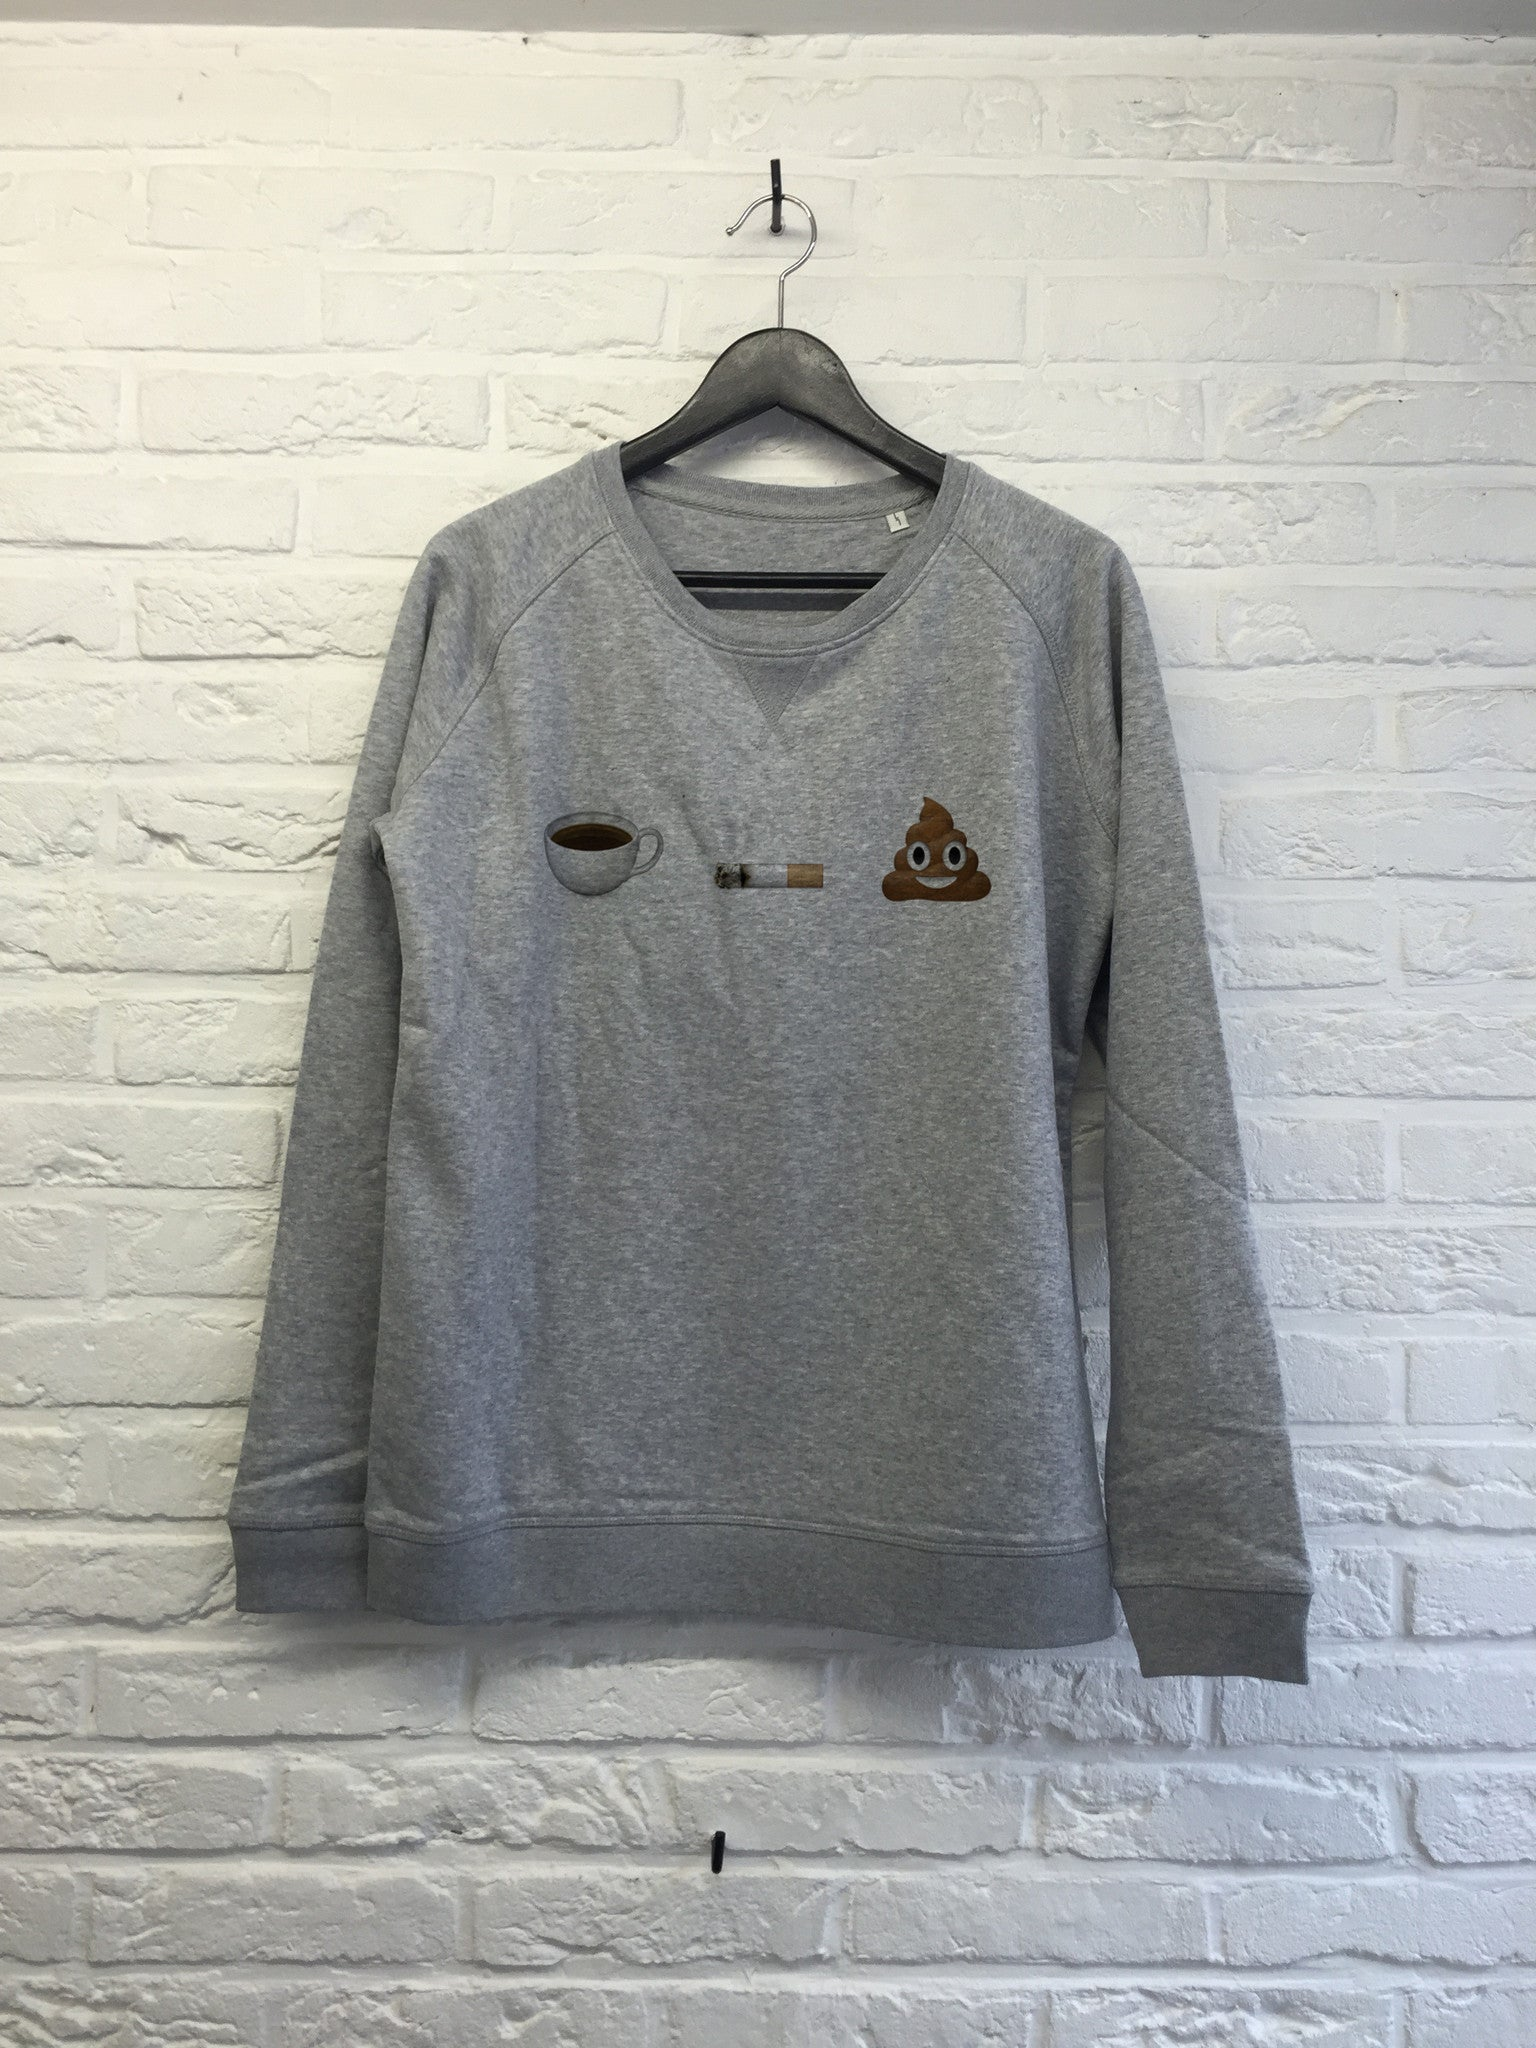 Cafe clope caca - Sweat - Femme-Sweat shirts-Atelier Amelot